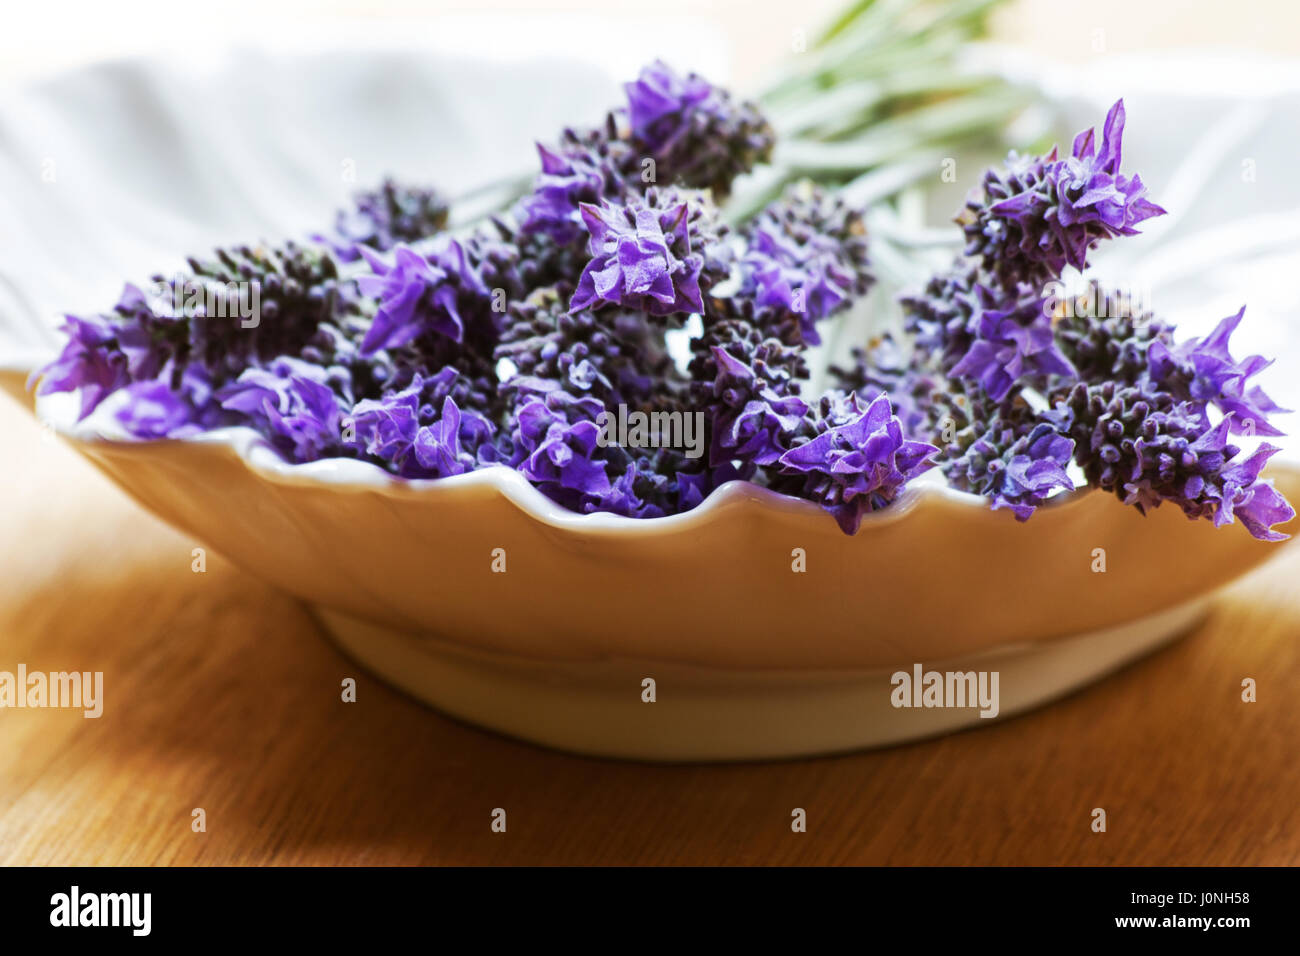 Lavender sprigs in a bowl on a table - Stock Image